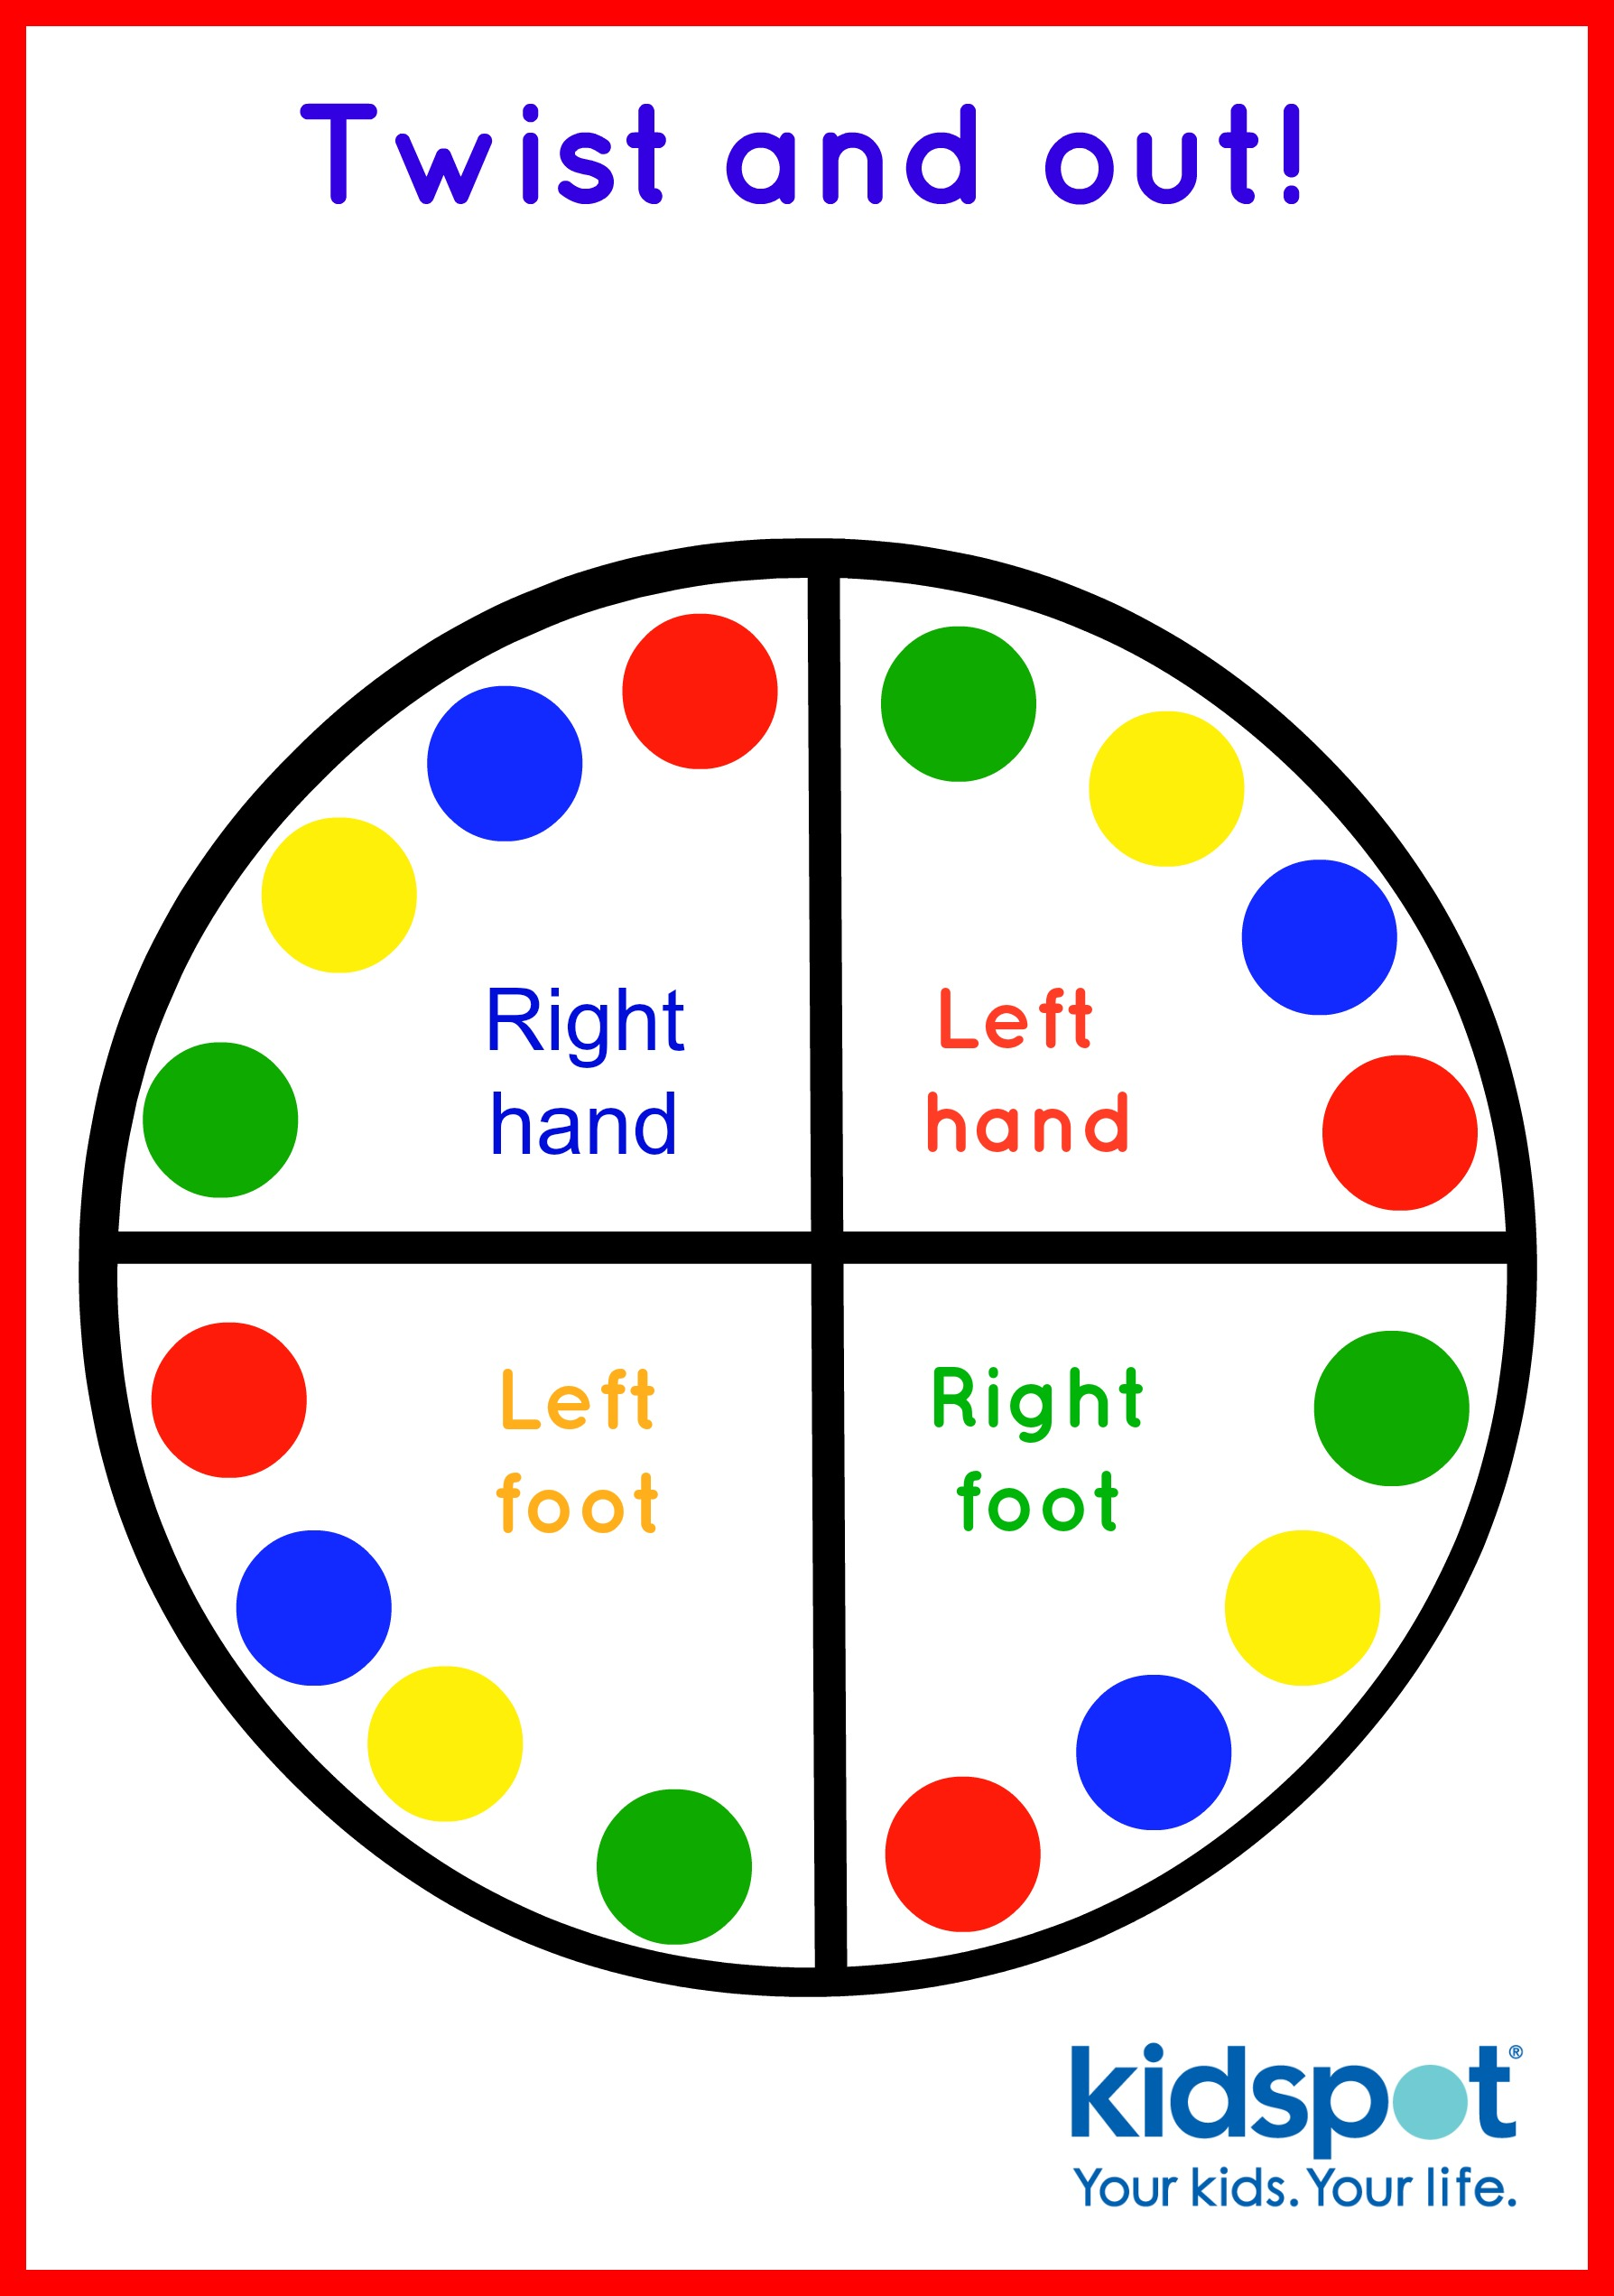 graphic regarding Finger Twister Printable titled Twister - Outside Game titles - Loved ones Game titles